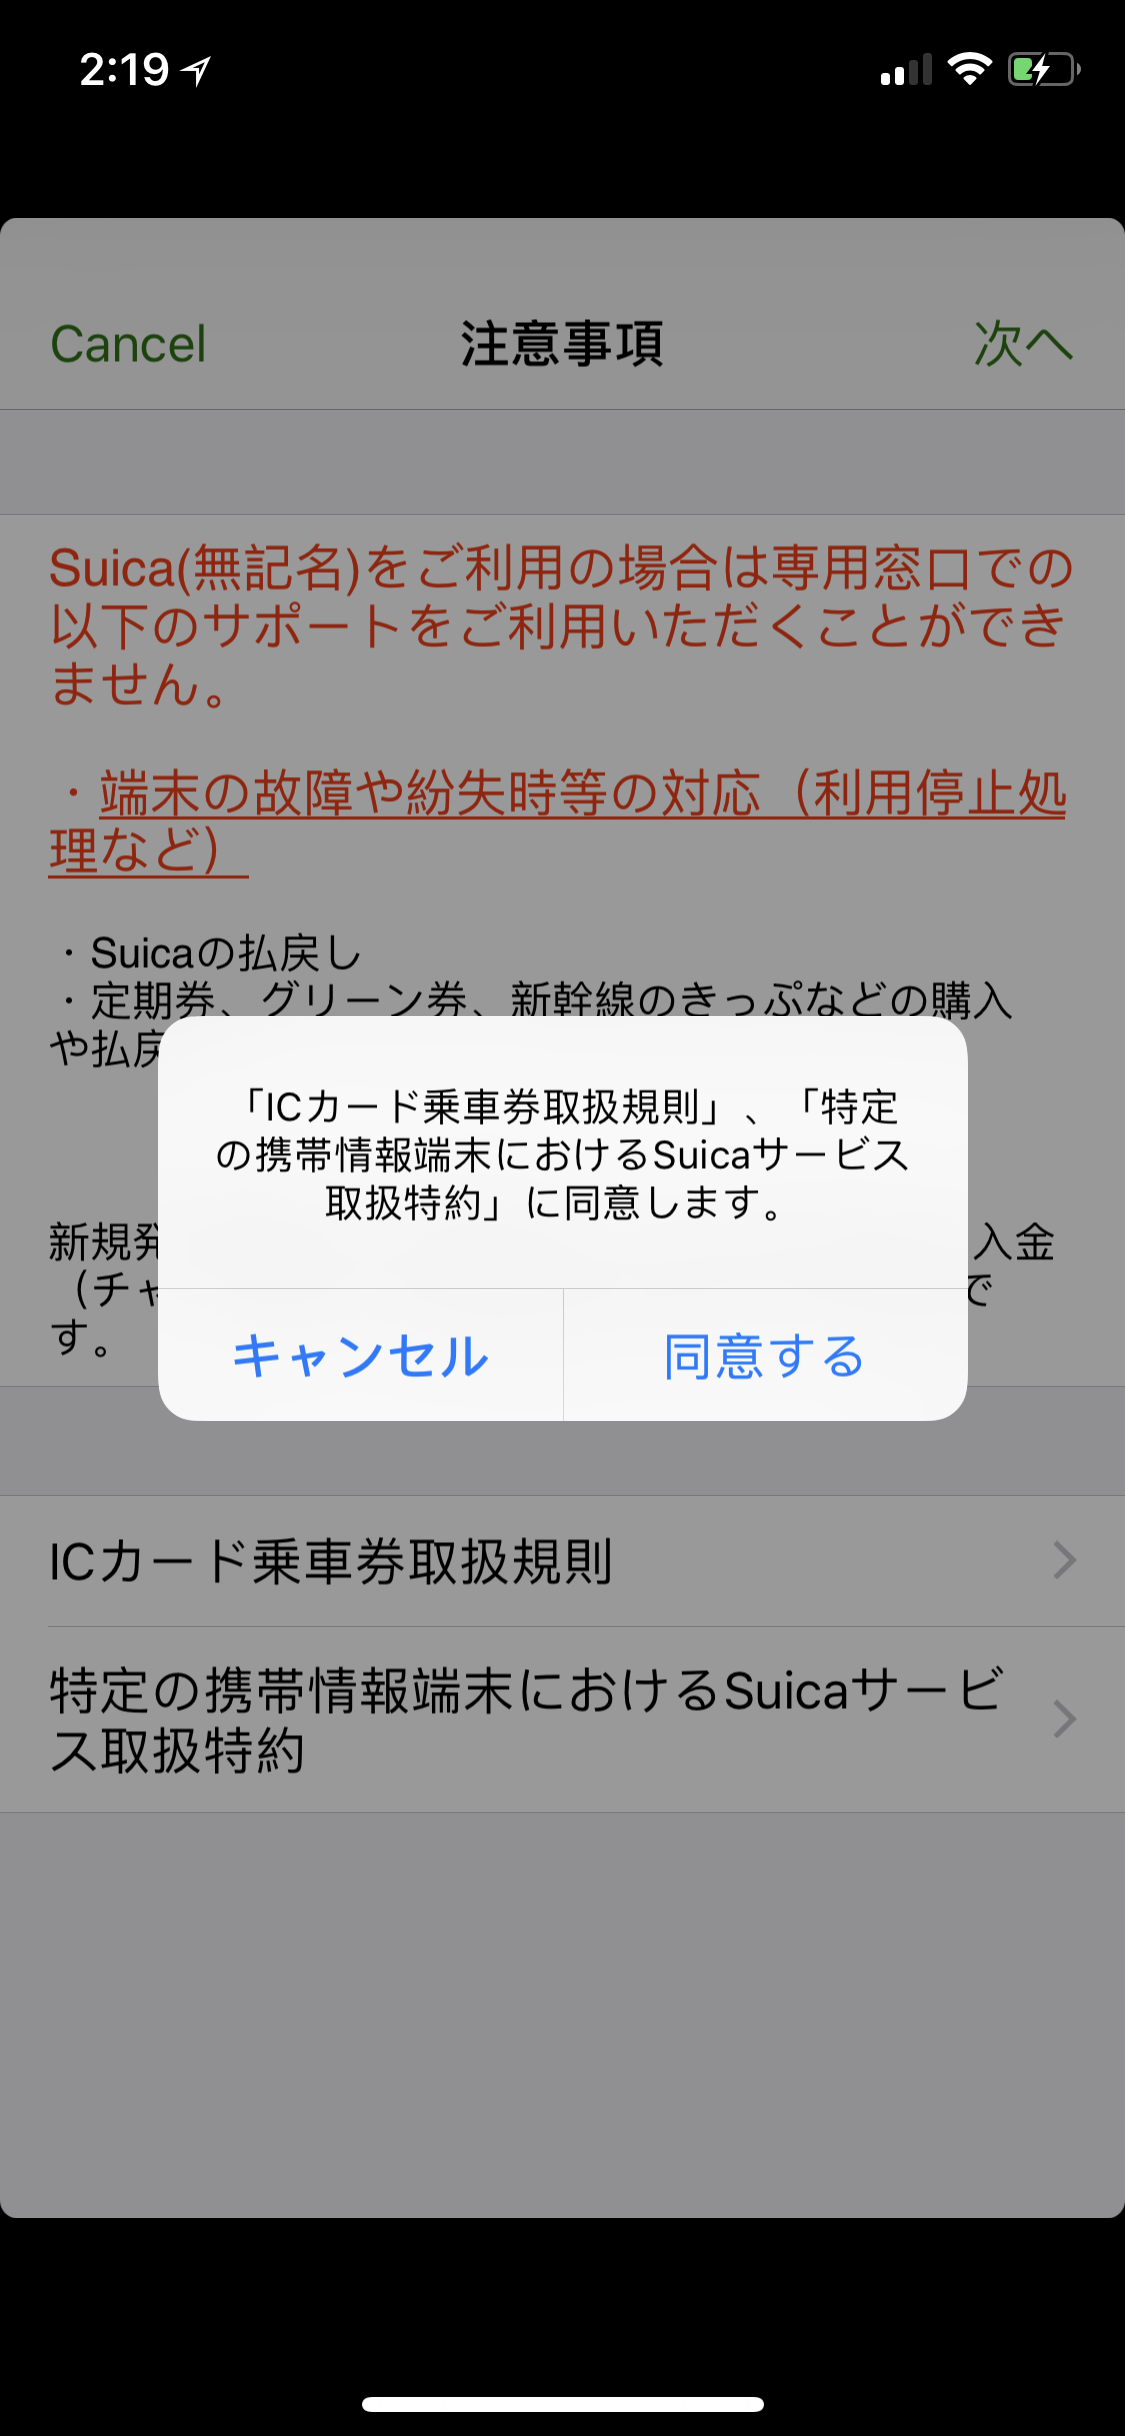 Screenshot of the Suica app with Japanese text in alert